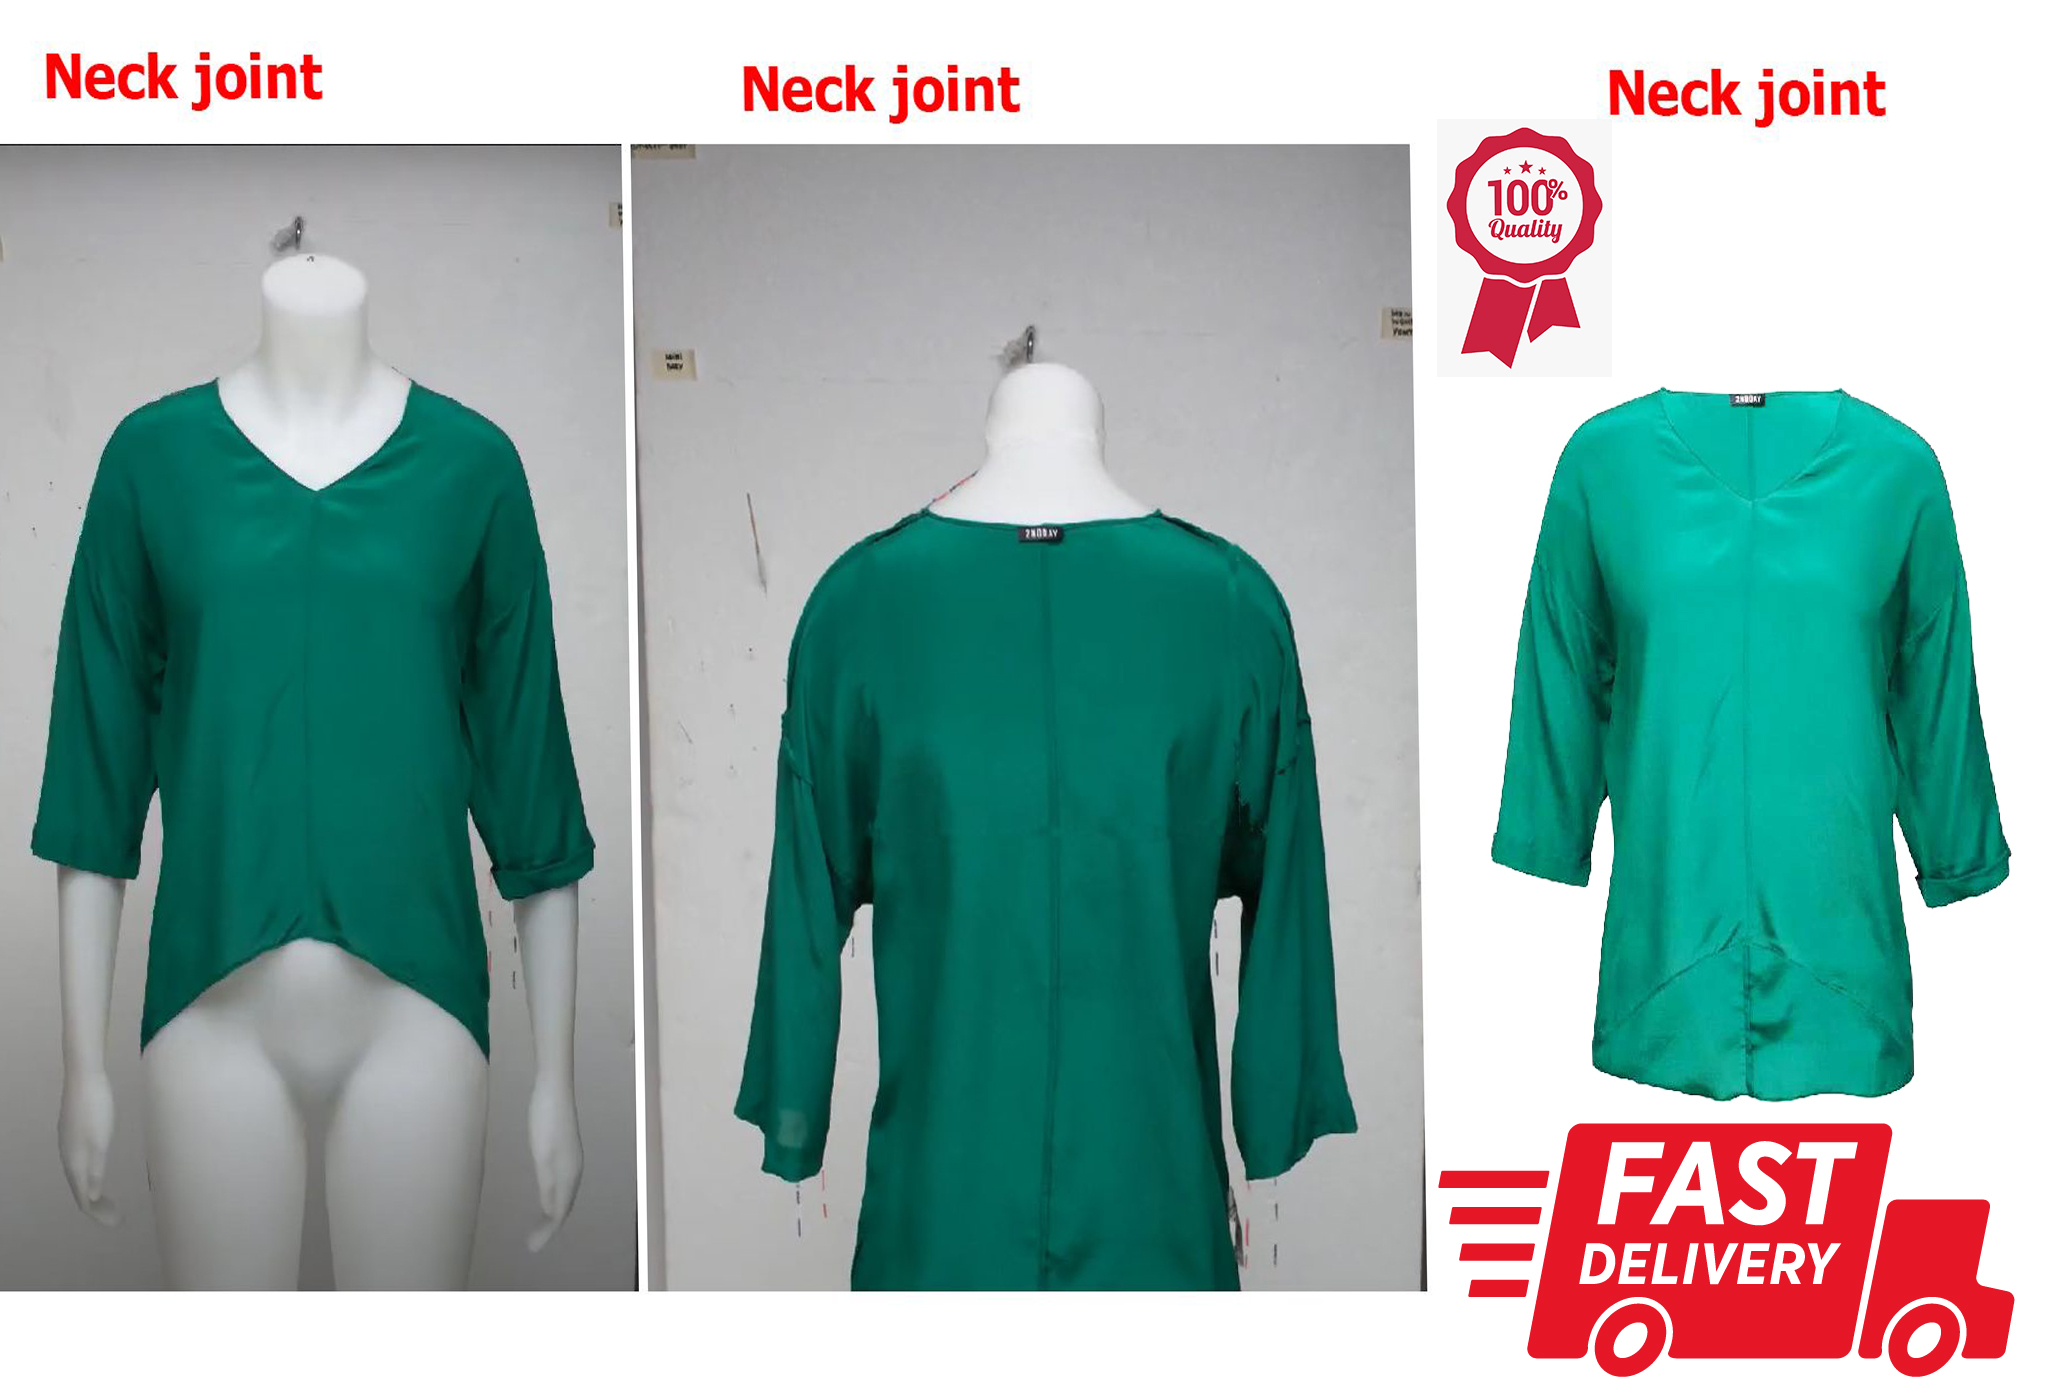 I will do ghost mannequin,  neck joint,  image editing in 24 hours